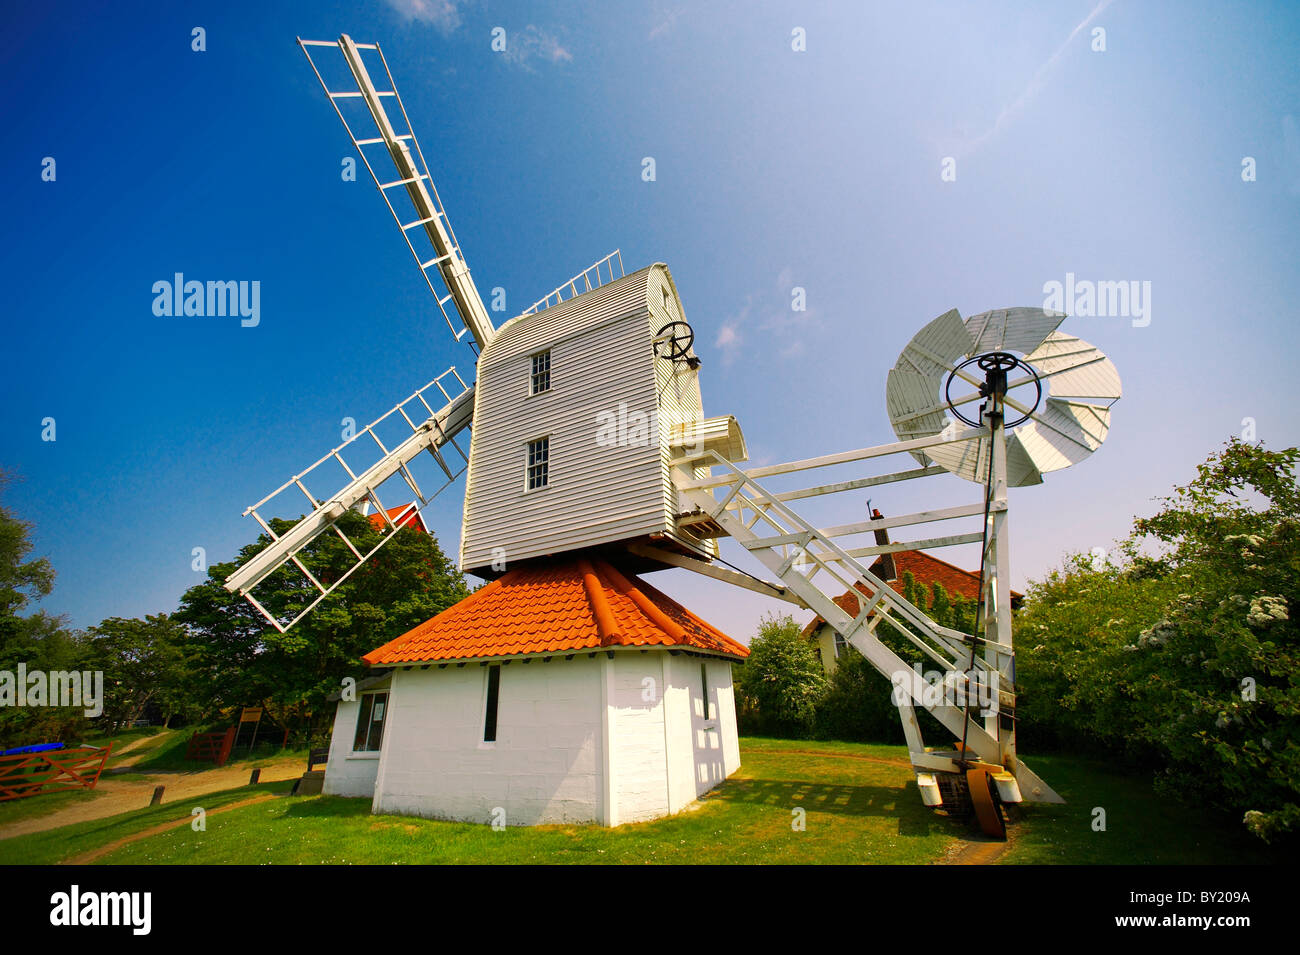 Wooden windmill at Thorpeness village - Suffolk - England - Stock Image